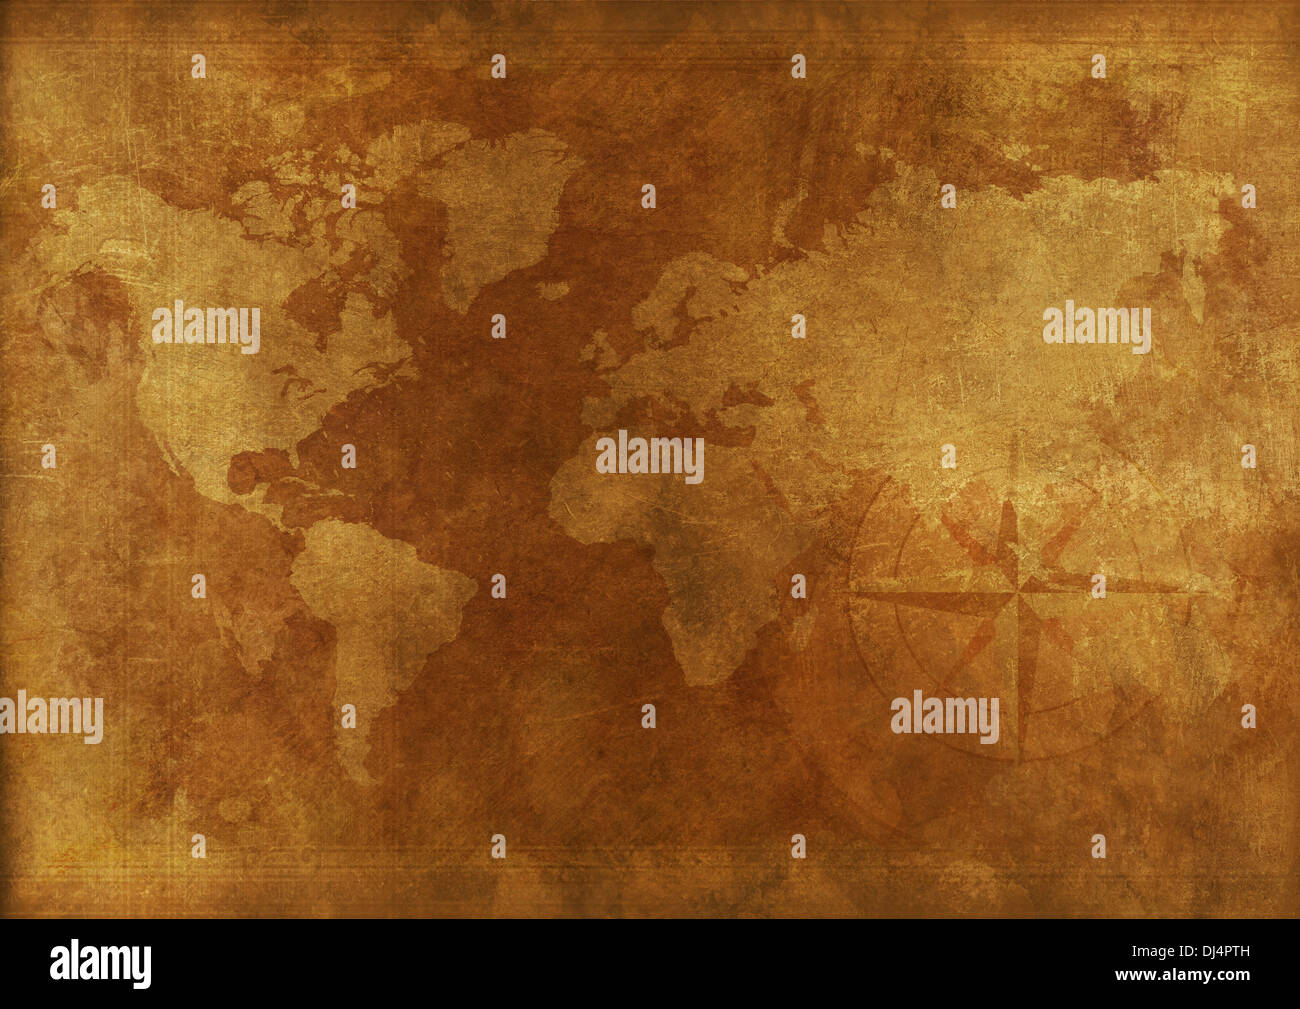 Aged world map vintage background backgrounds collection stock aged world map vintage background backgrounds collection gumiabroncs Gallery